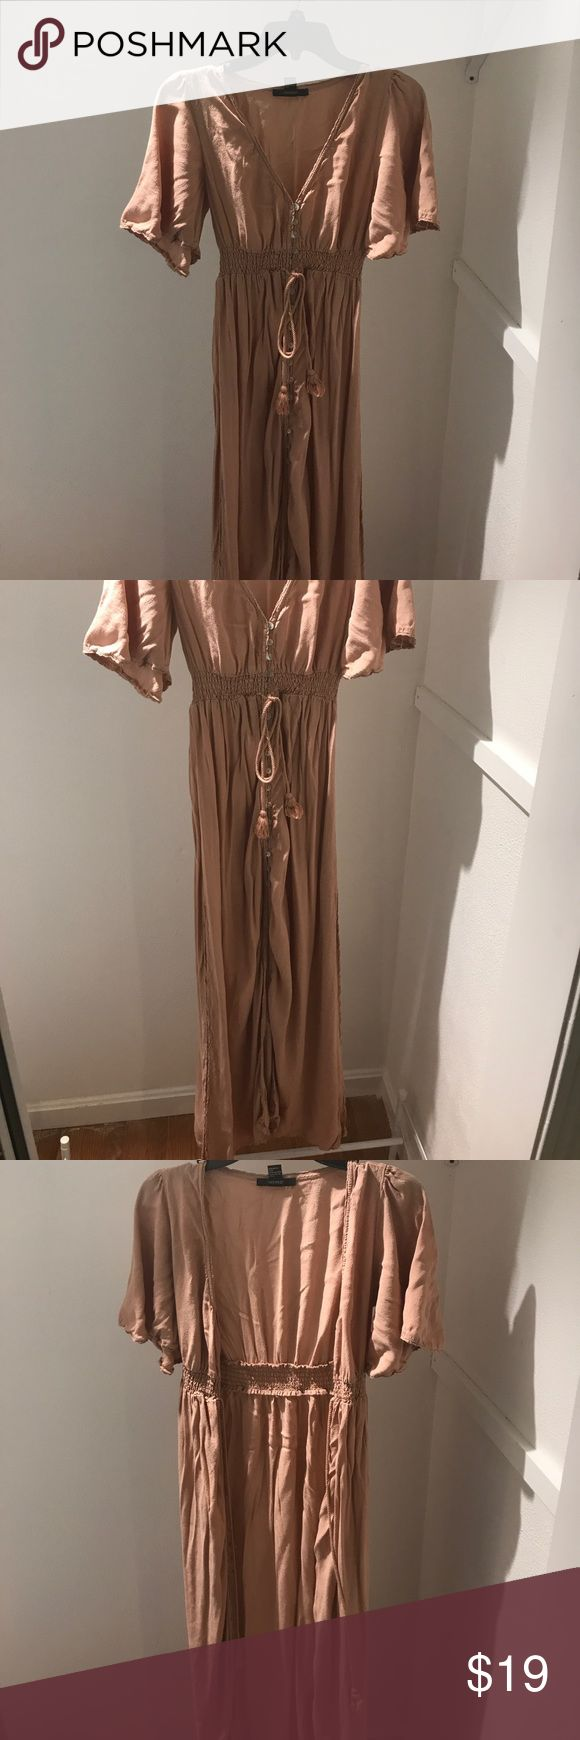 Peach Coachella Dress & Duster Brand new w/ out tags, never worn. Tag says large but best fits a med if worn as dress & large if worn as duster, I'm about 5'7 & it reached my ankles ....(The more you buy, the more I lower my prices so bundle & save!!) Forever 21 Dresses Maxi